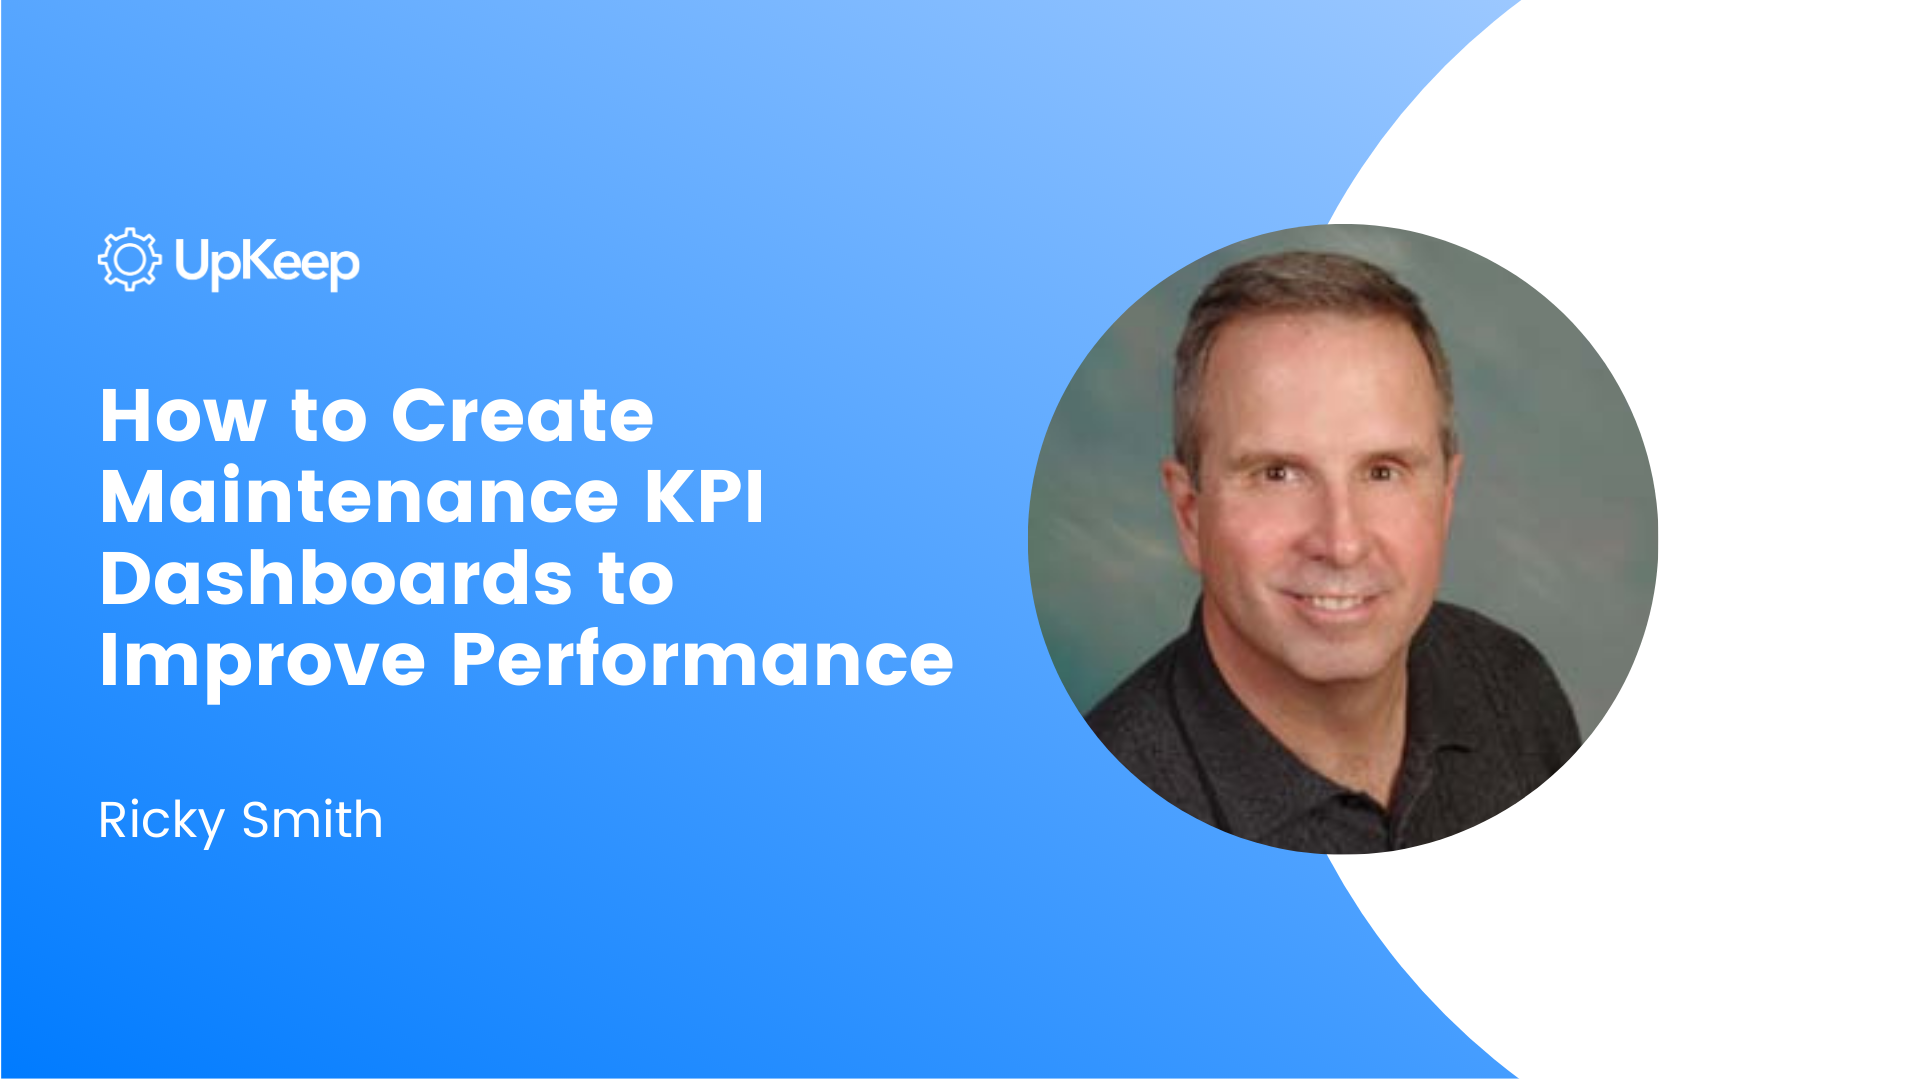 How to Create Maintenance KPI Dashboards to Improve Performance